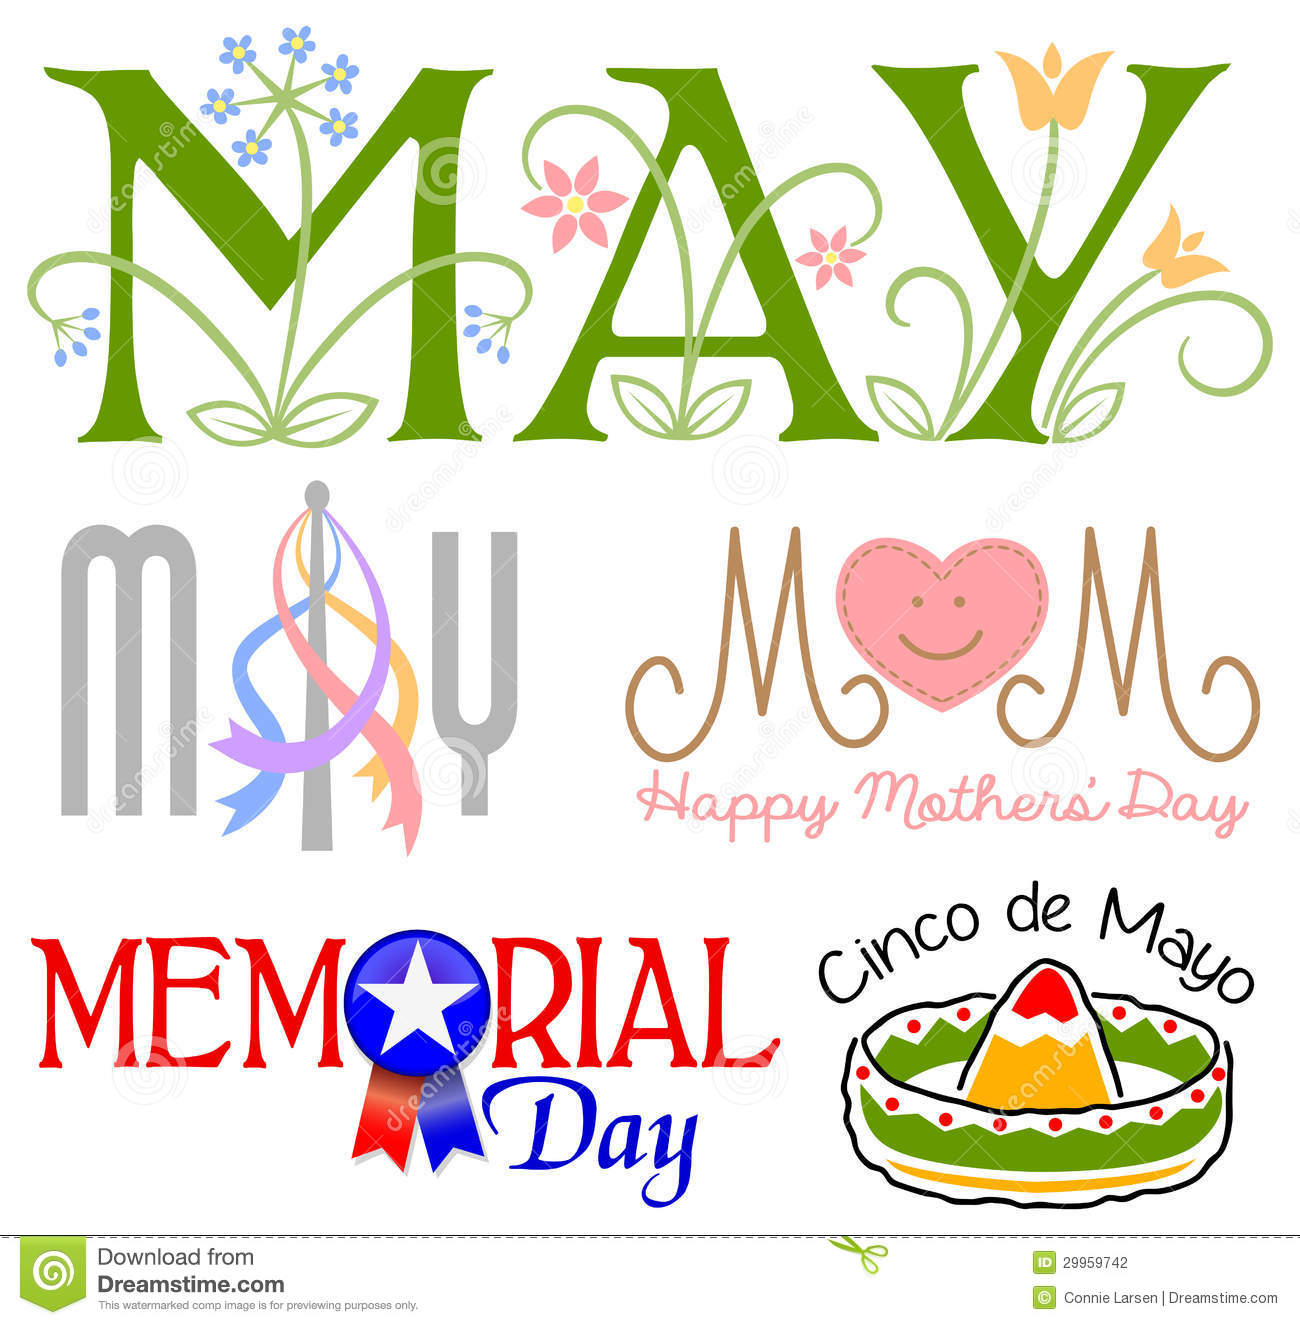 headlines for May events including Mothers Day, Cinco de Mayo ...